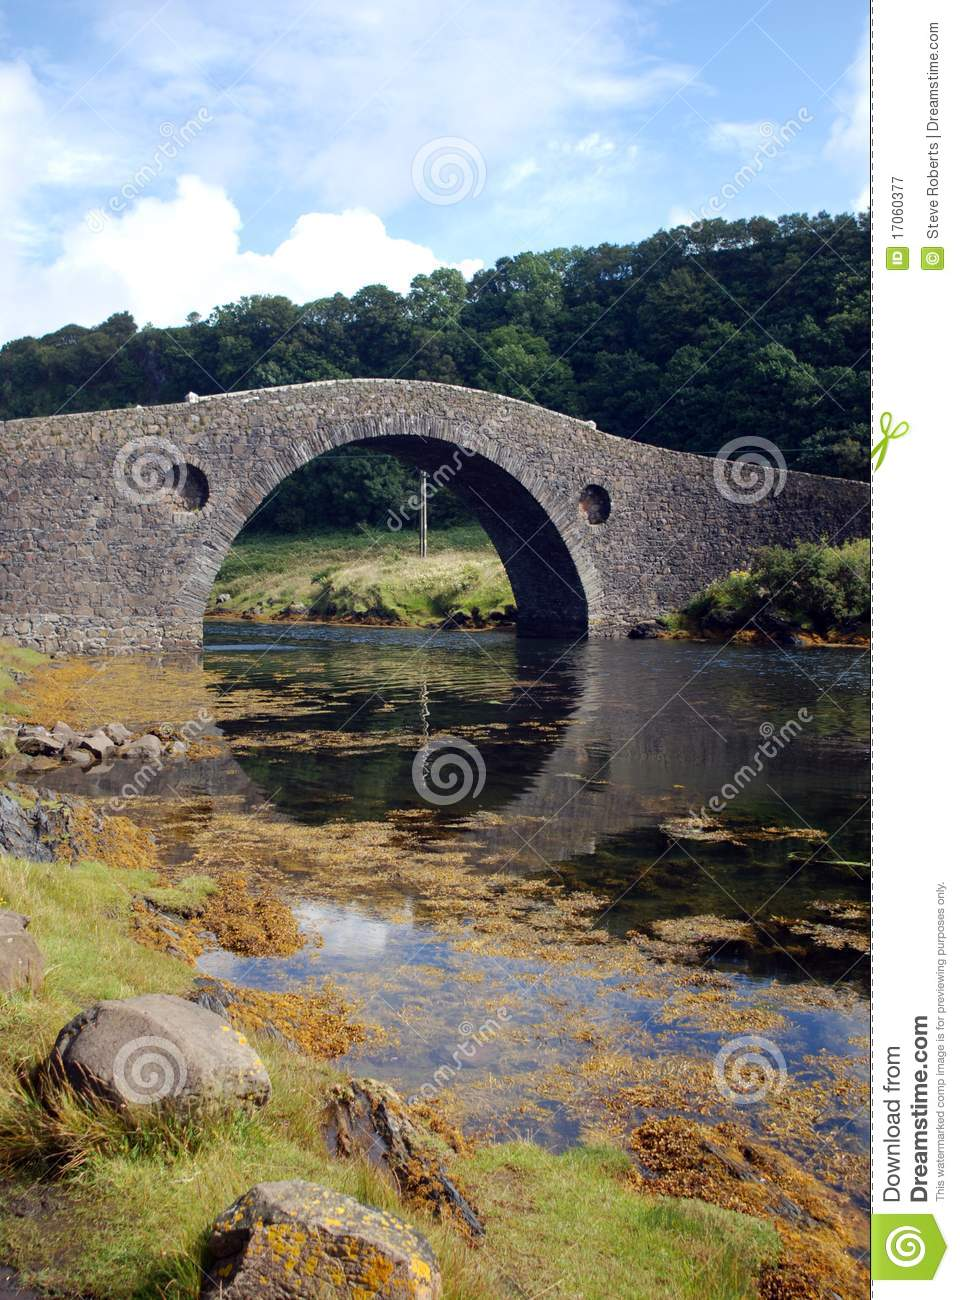 View of arched stone bridge over river with forest in background